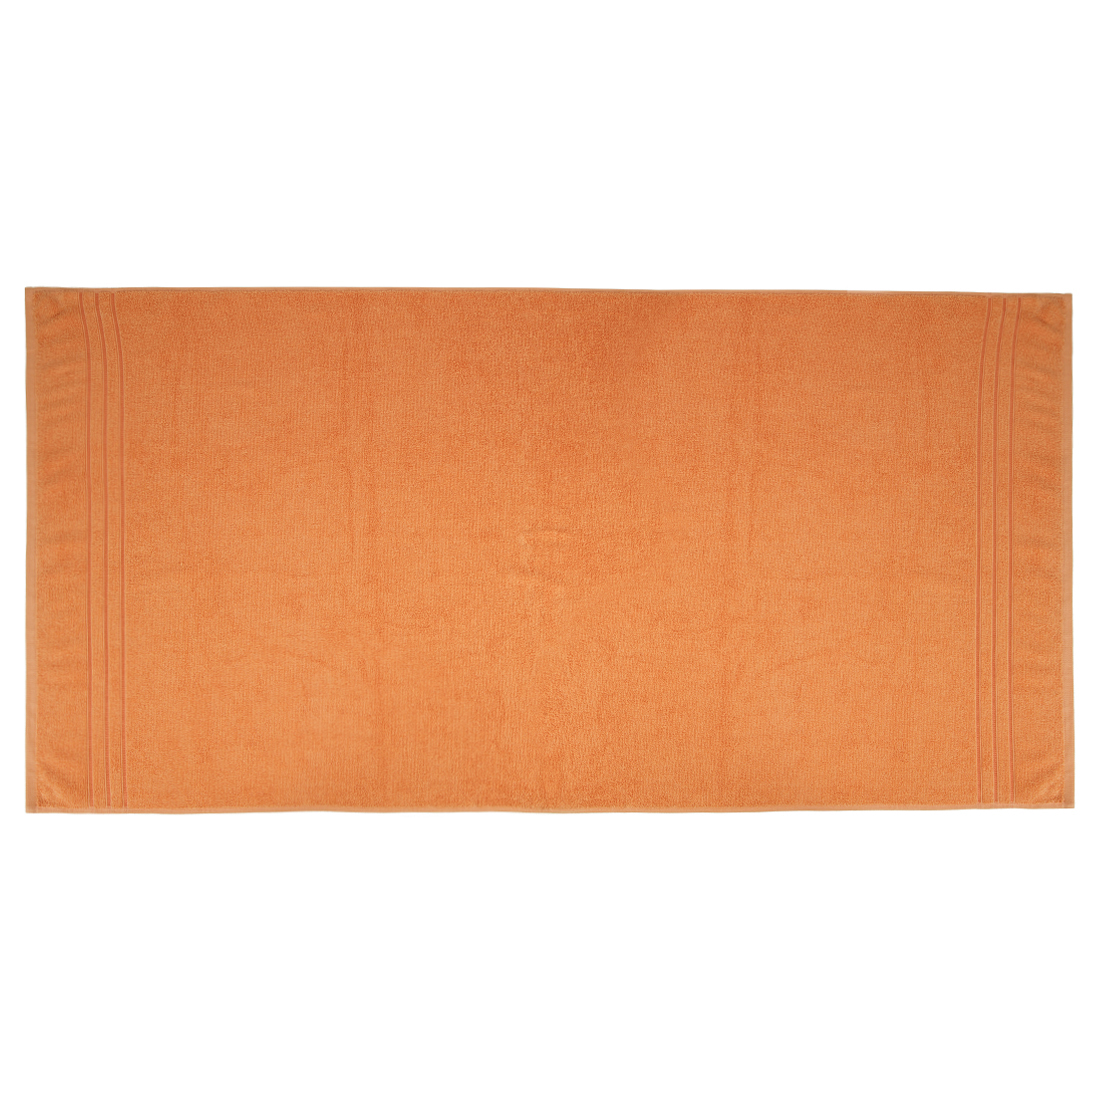 Bath Towel Nora Mustard Cotton Bath Towels in Mustard Colour by Living Essence